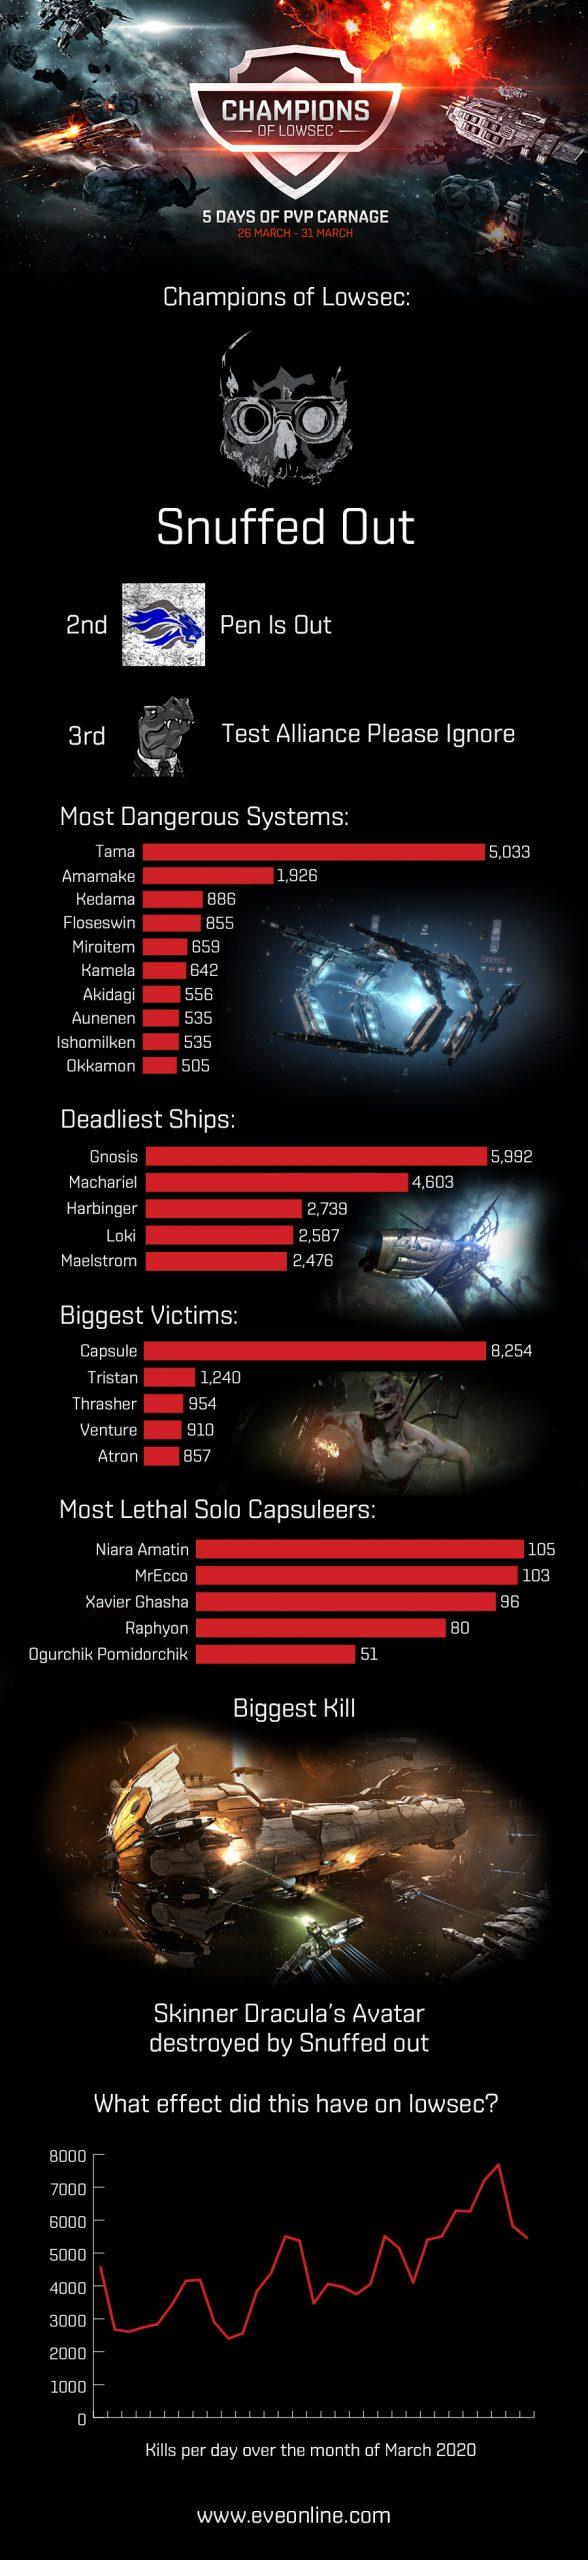 champions of lowsec infographic